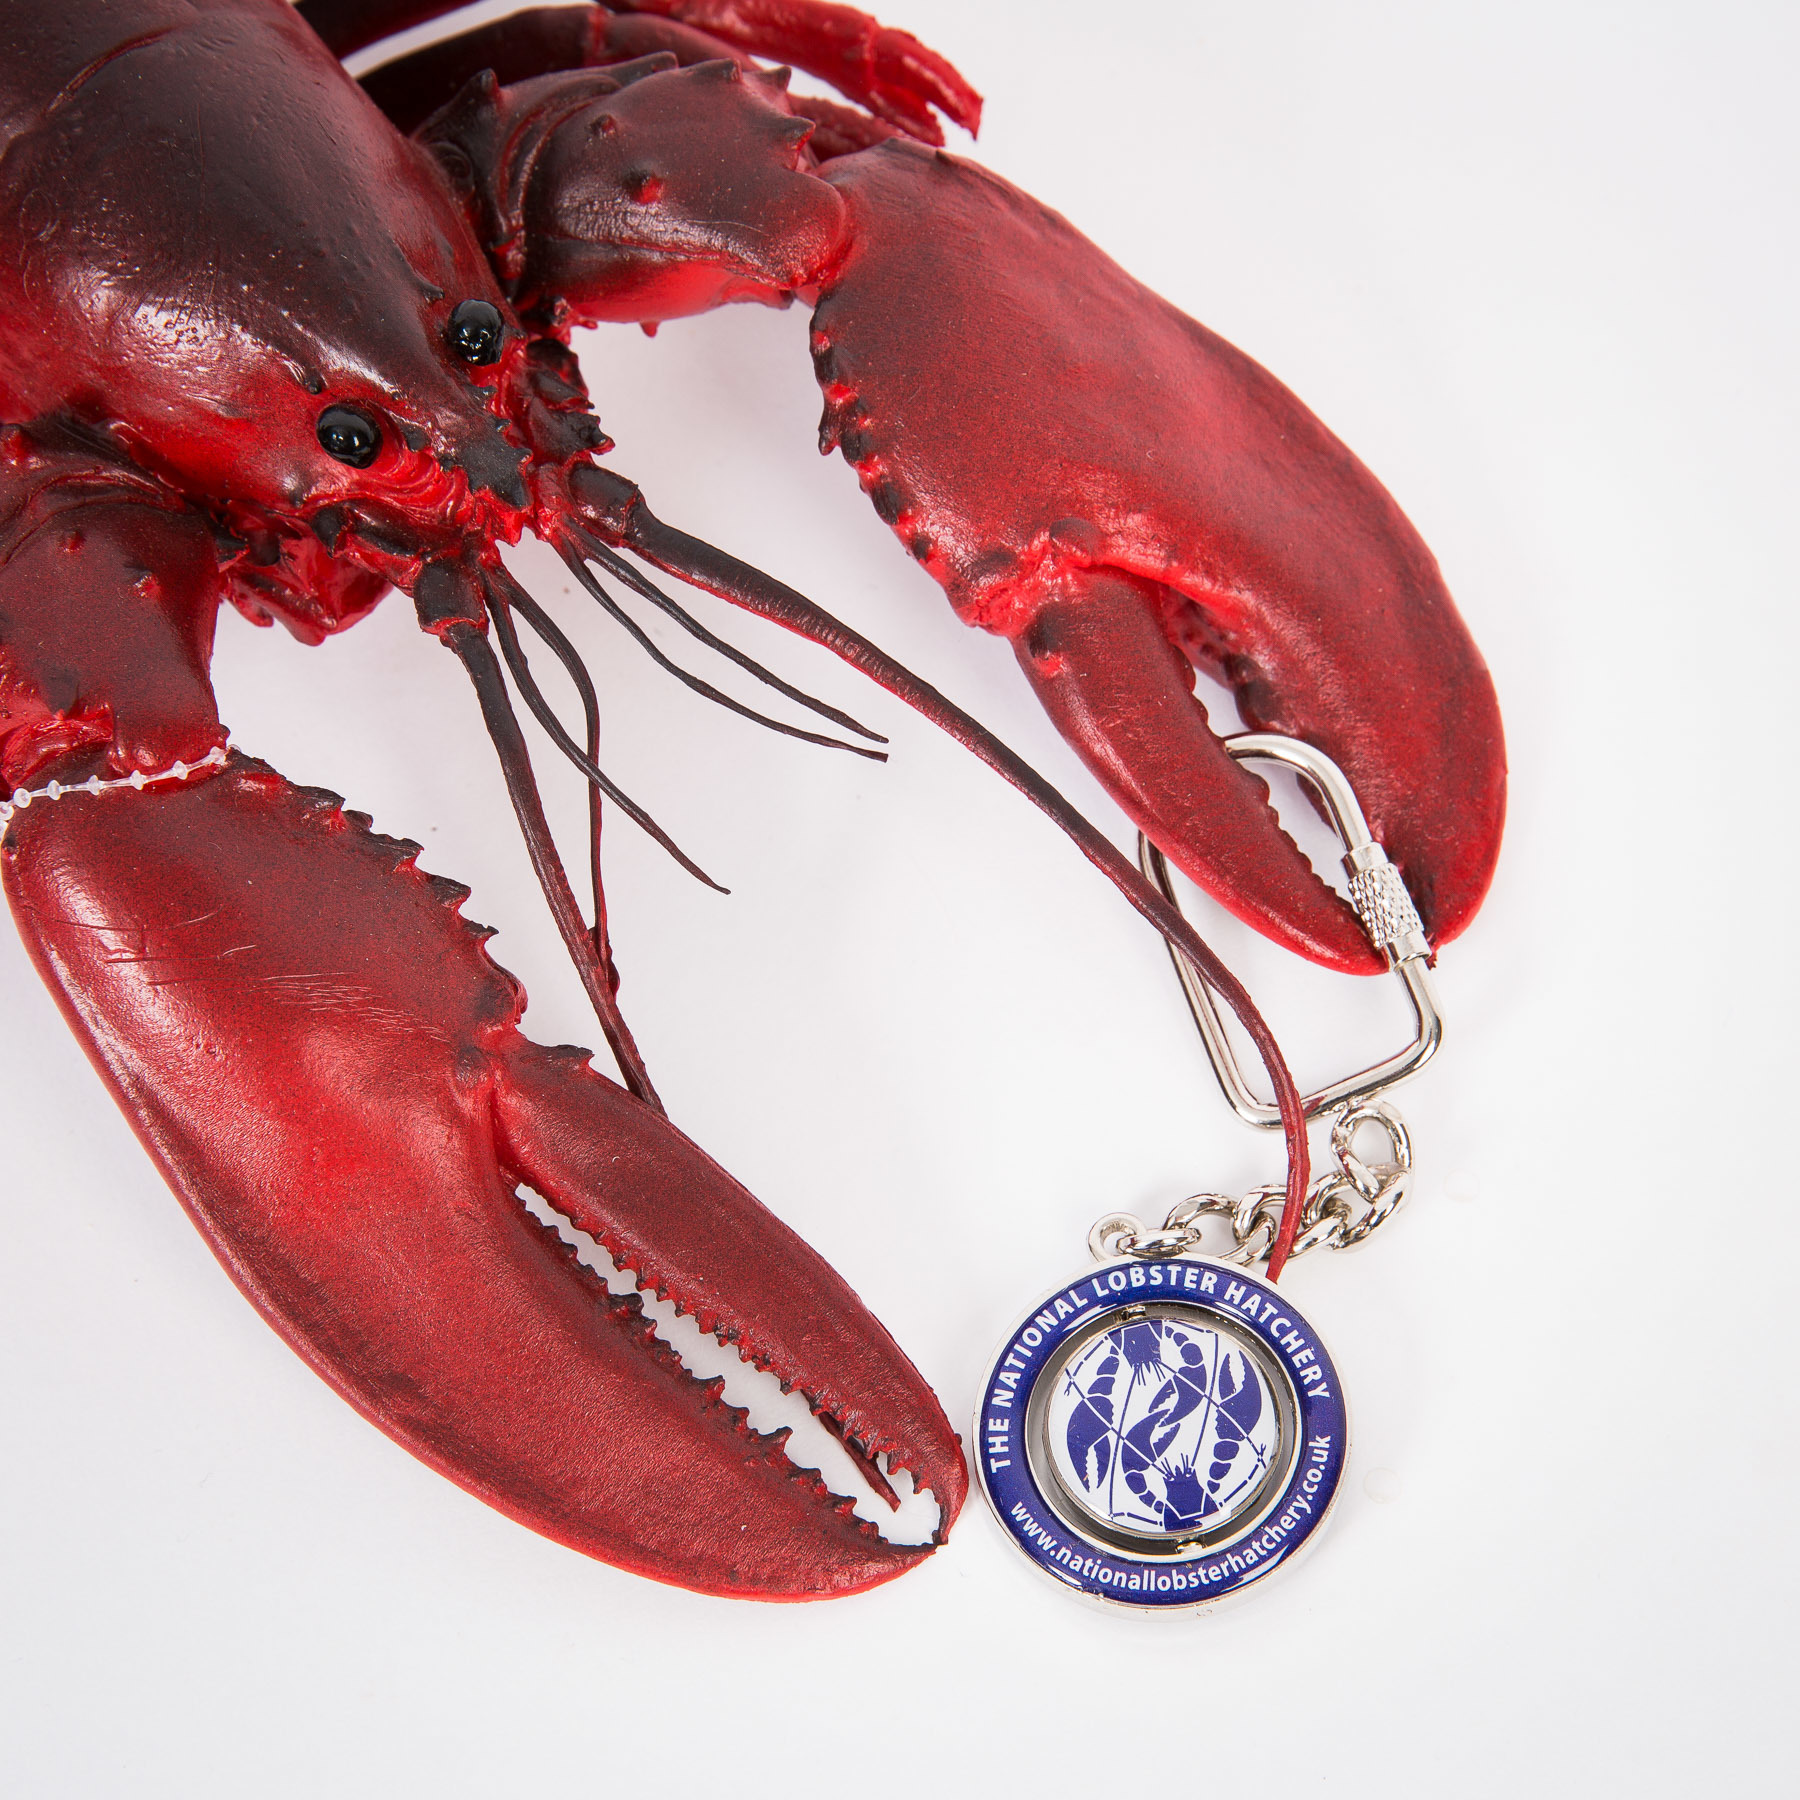 National Lobster Hatchery Spinner Key Chain 00175